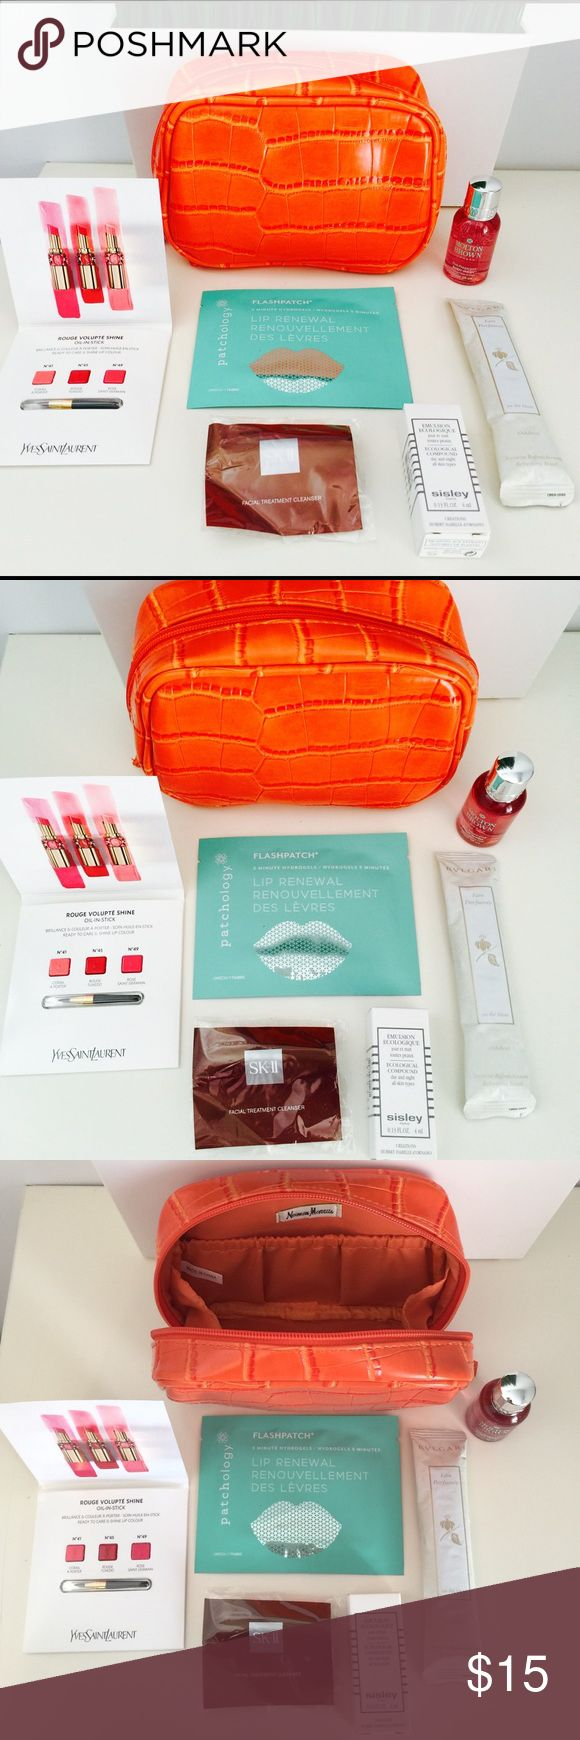 Neiman Marcus Orange Beauty/Cosmetic Makeup Bag New lower price & more new samples!! Autumn perfect beauty (cosmetic/makeup) bag. A good fit for all your beauty essentials. Comes with the beauty samples seen in pictures and more! New & Unused samples included: Giogio Armani fluid sheer, Clarins Beauty Flash Balm, Boss Intense Eau de Toilette, Sisley Ecological Compound, SK-II facial Cleanser, BVLGARI refreshing towel, YSL lipstick sample, Molton Brown body wash & Flashpatch lip hydrogel…